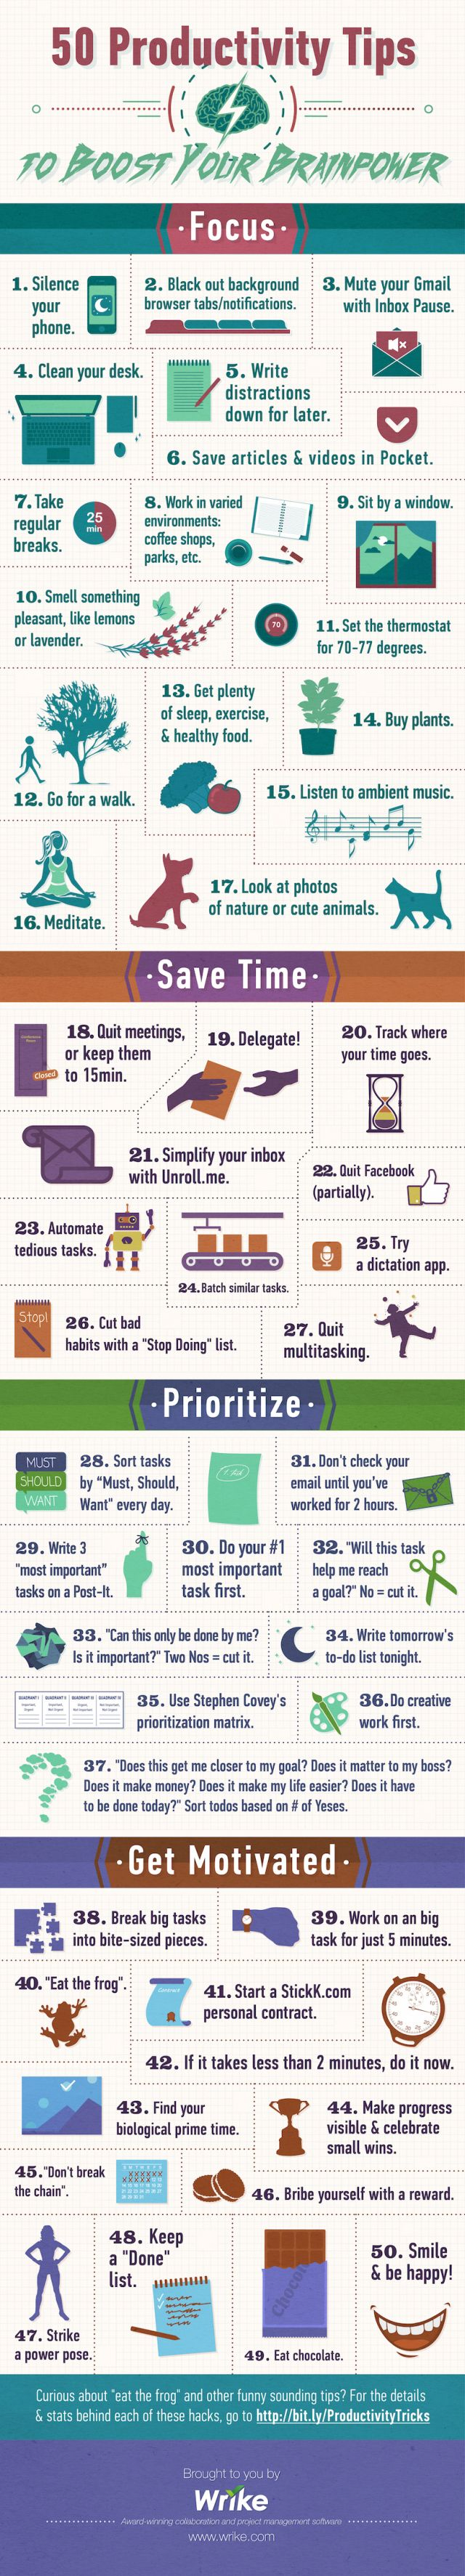 What Are 4 Categories And 50 Productivity Tips For Boosting Your  Brainpower? #infographic